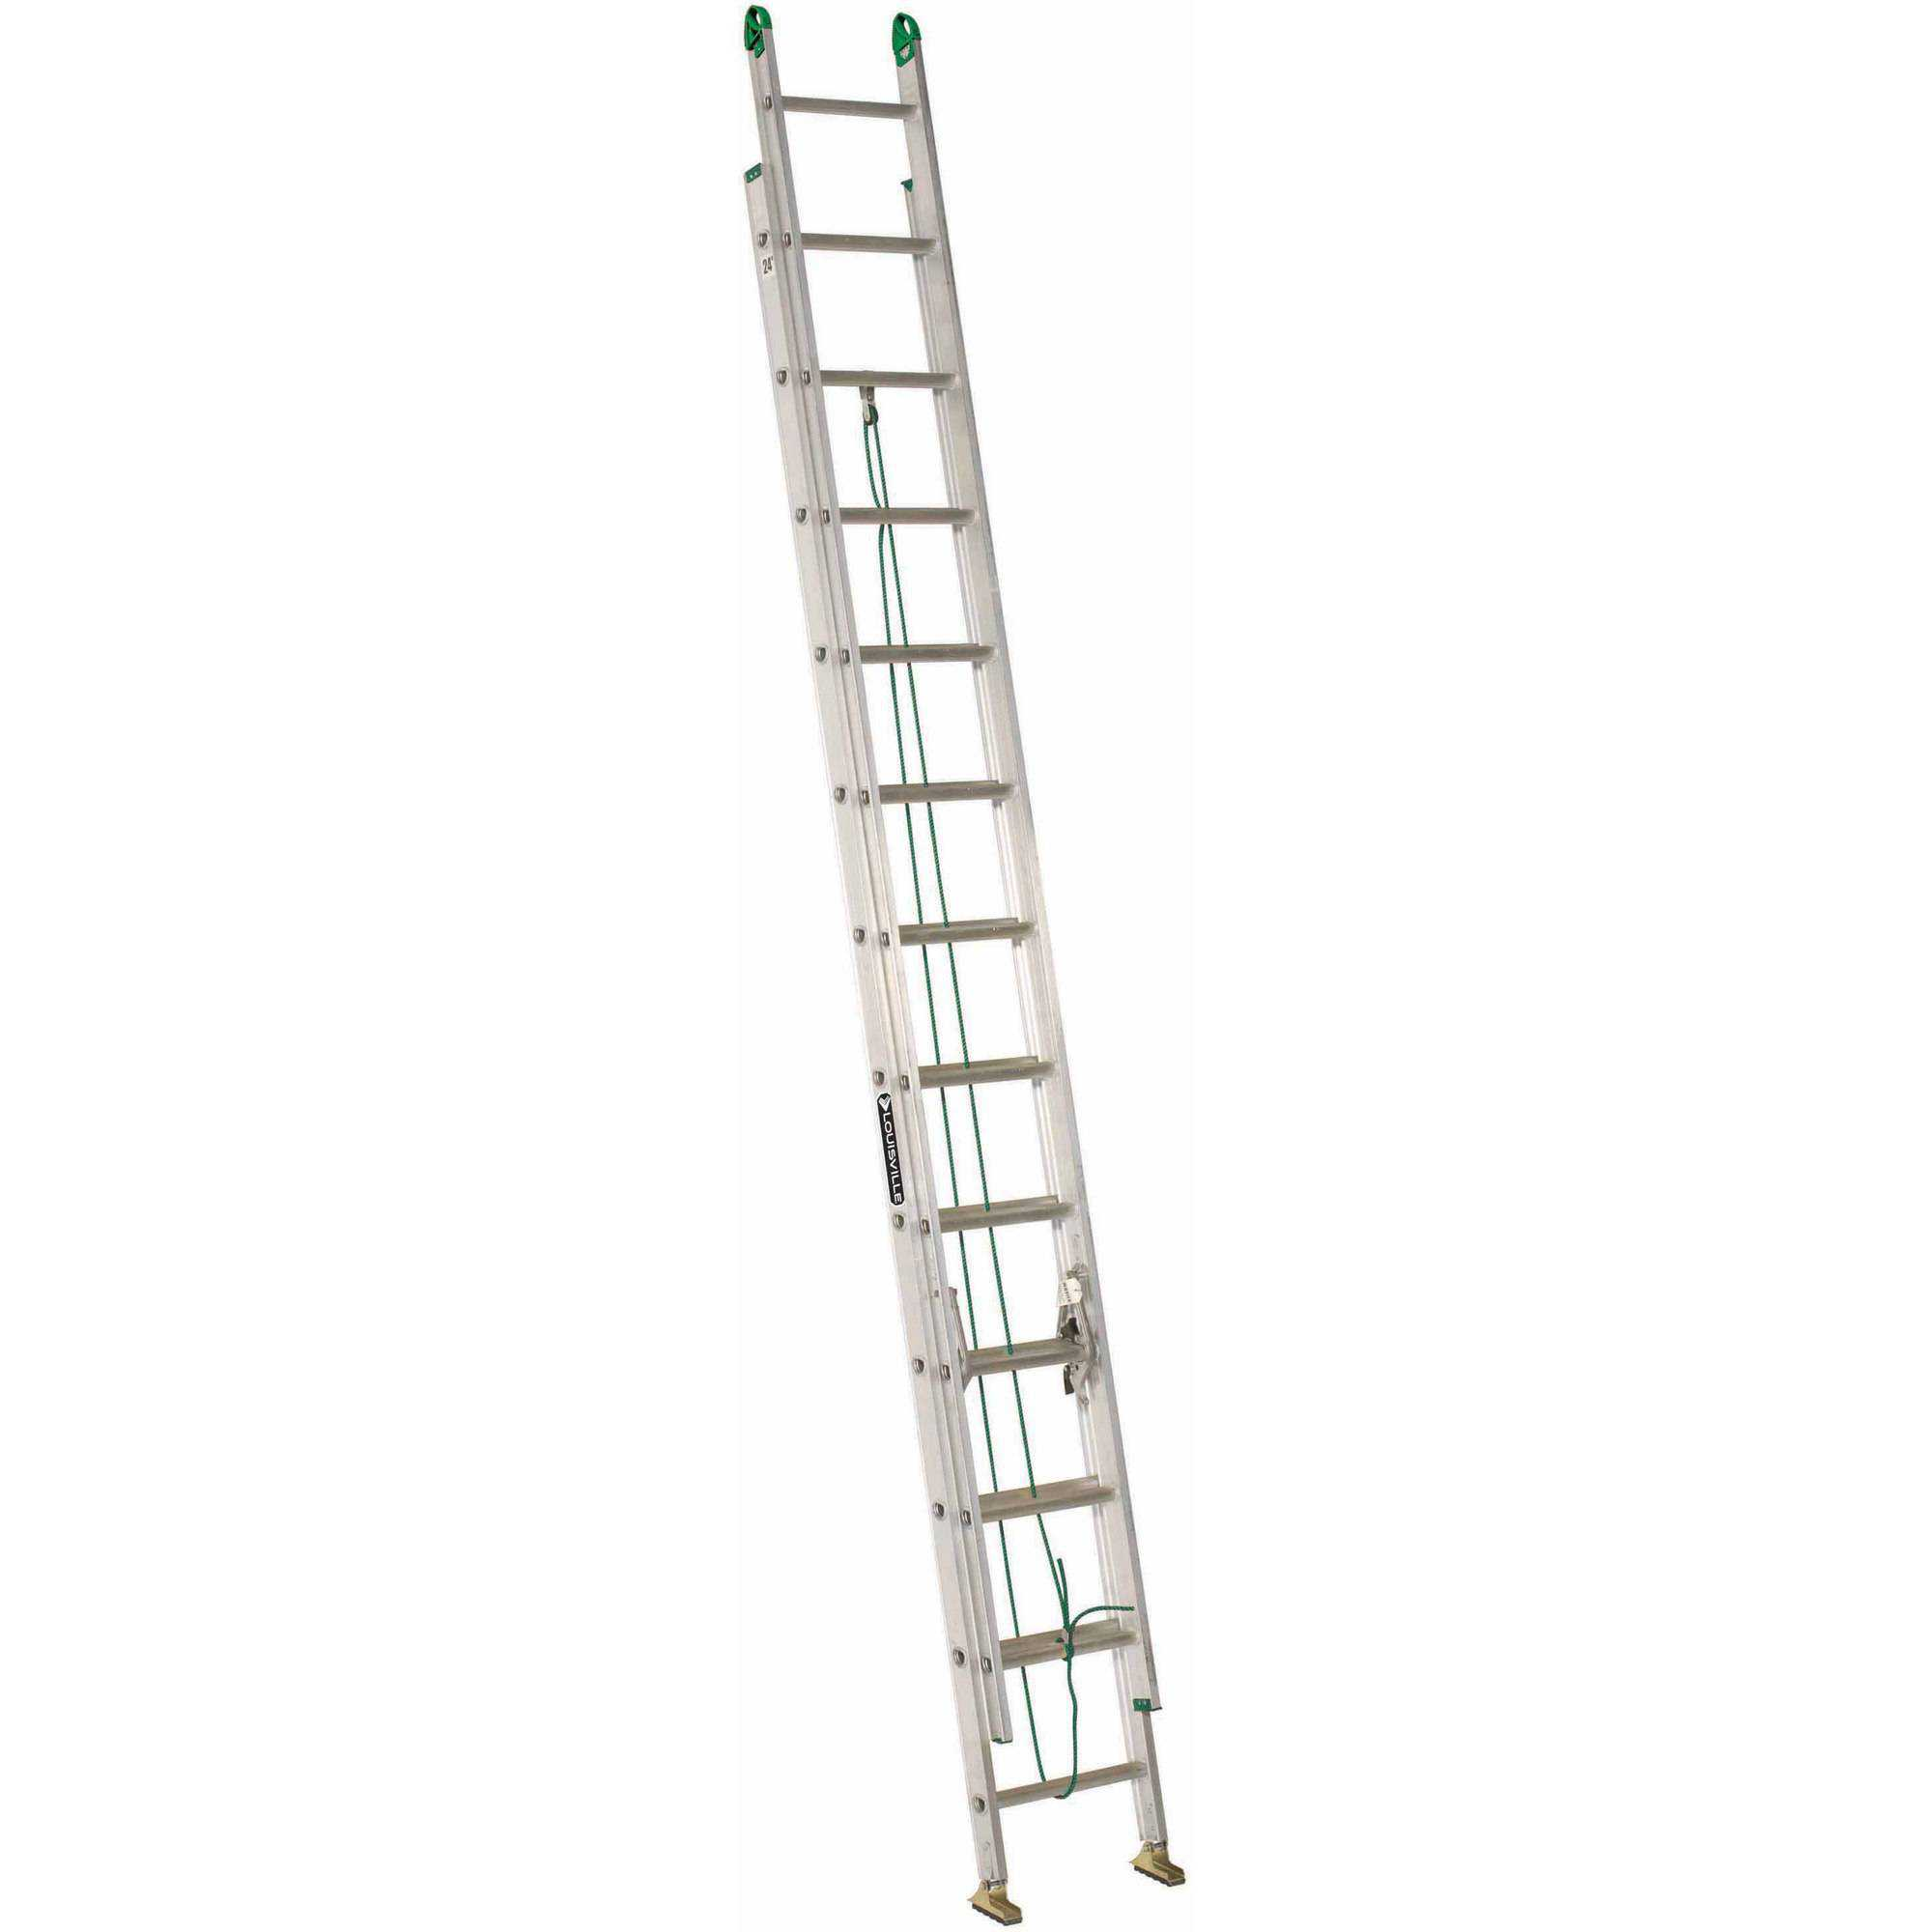 Louisville Ladder AE4224PG 24 ft. Aluminum Extension Ladder, Type II, 225 lbs Load Capacity